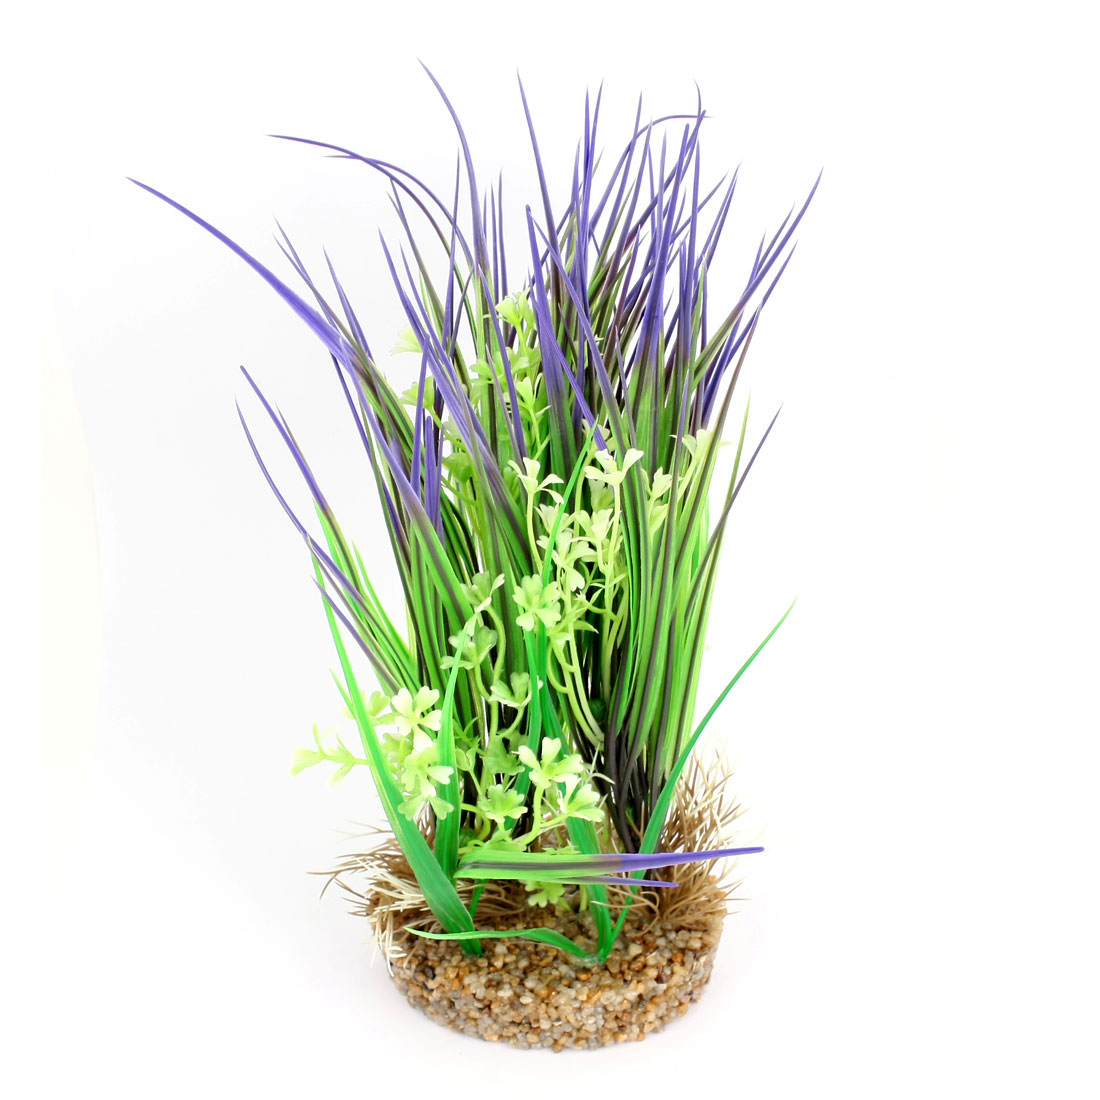 Aquarium Ornament Artificial Floral Accent Purple Green Water Grass 27cm High